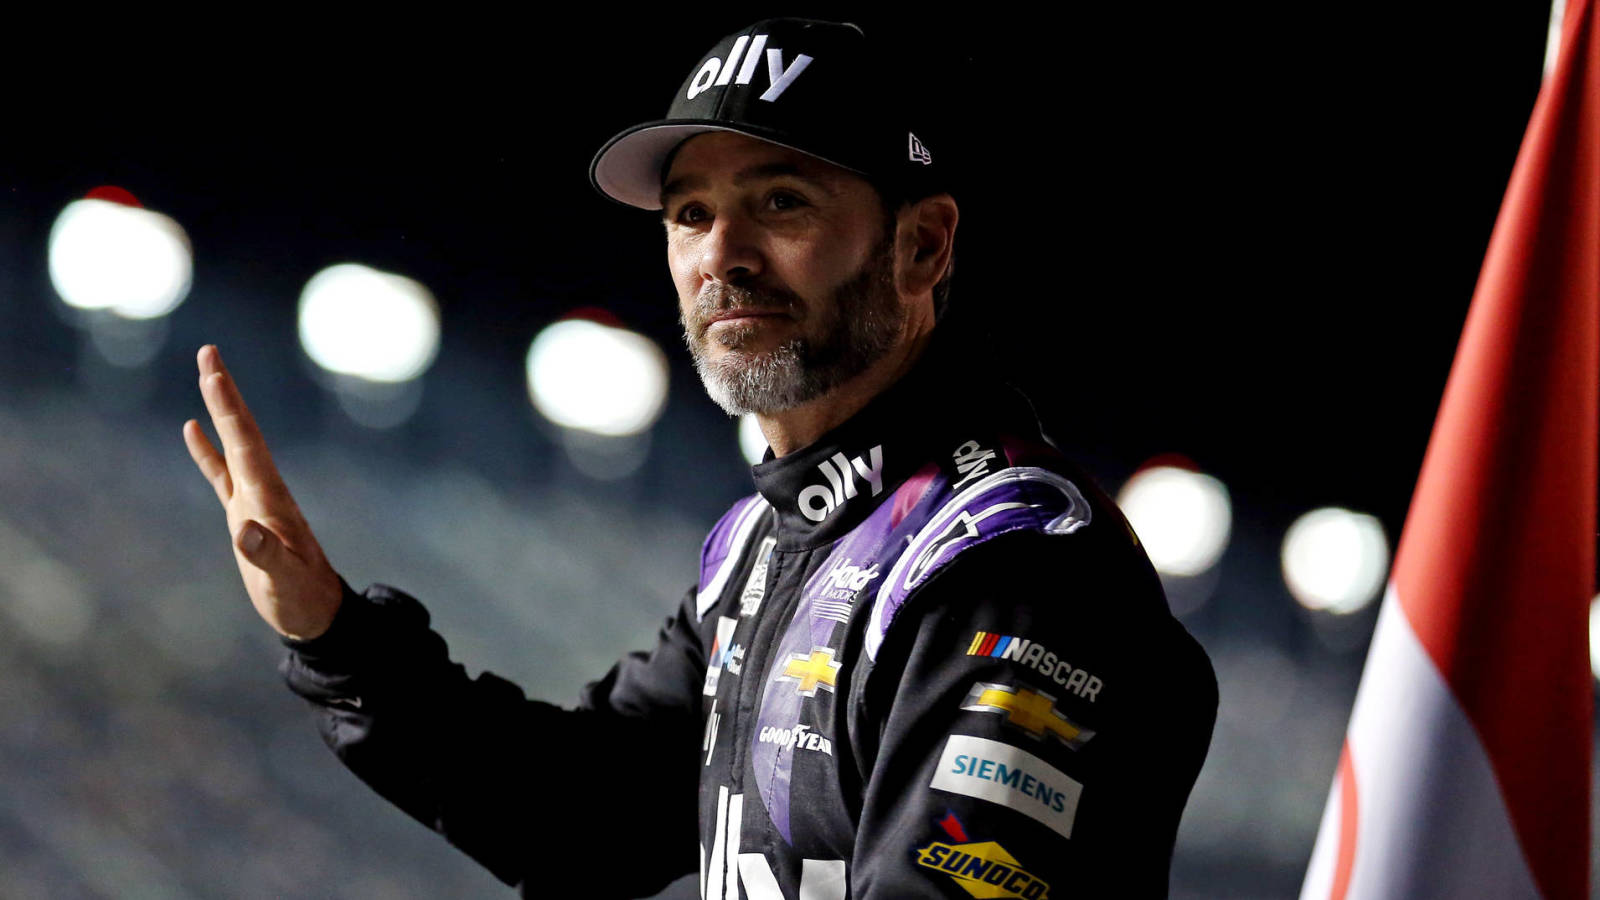 Jimmie Johnson cleared to race following negative COVID-19 tests